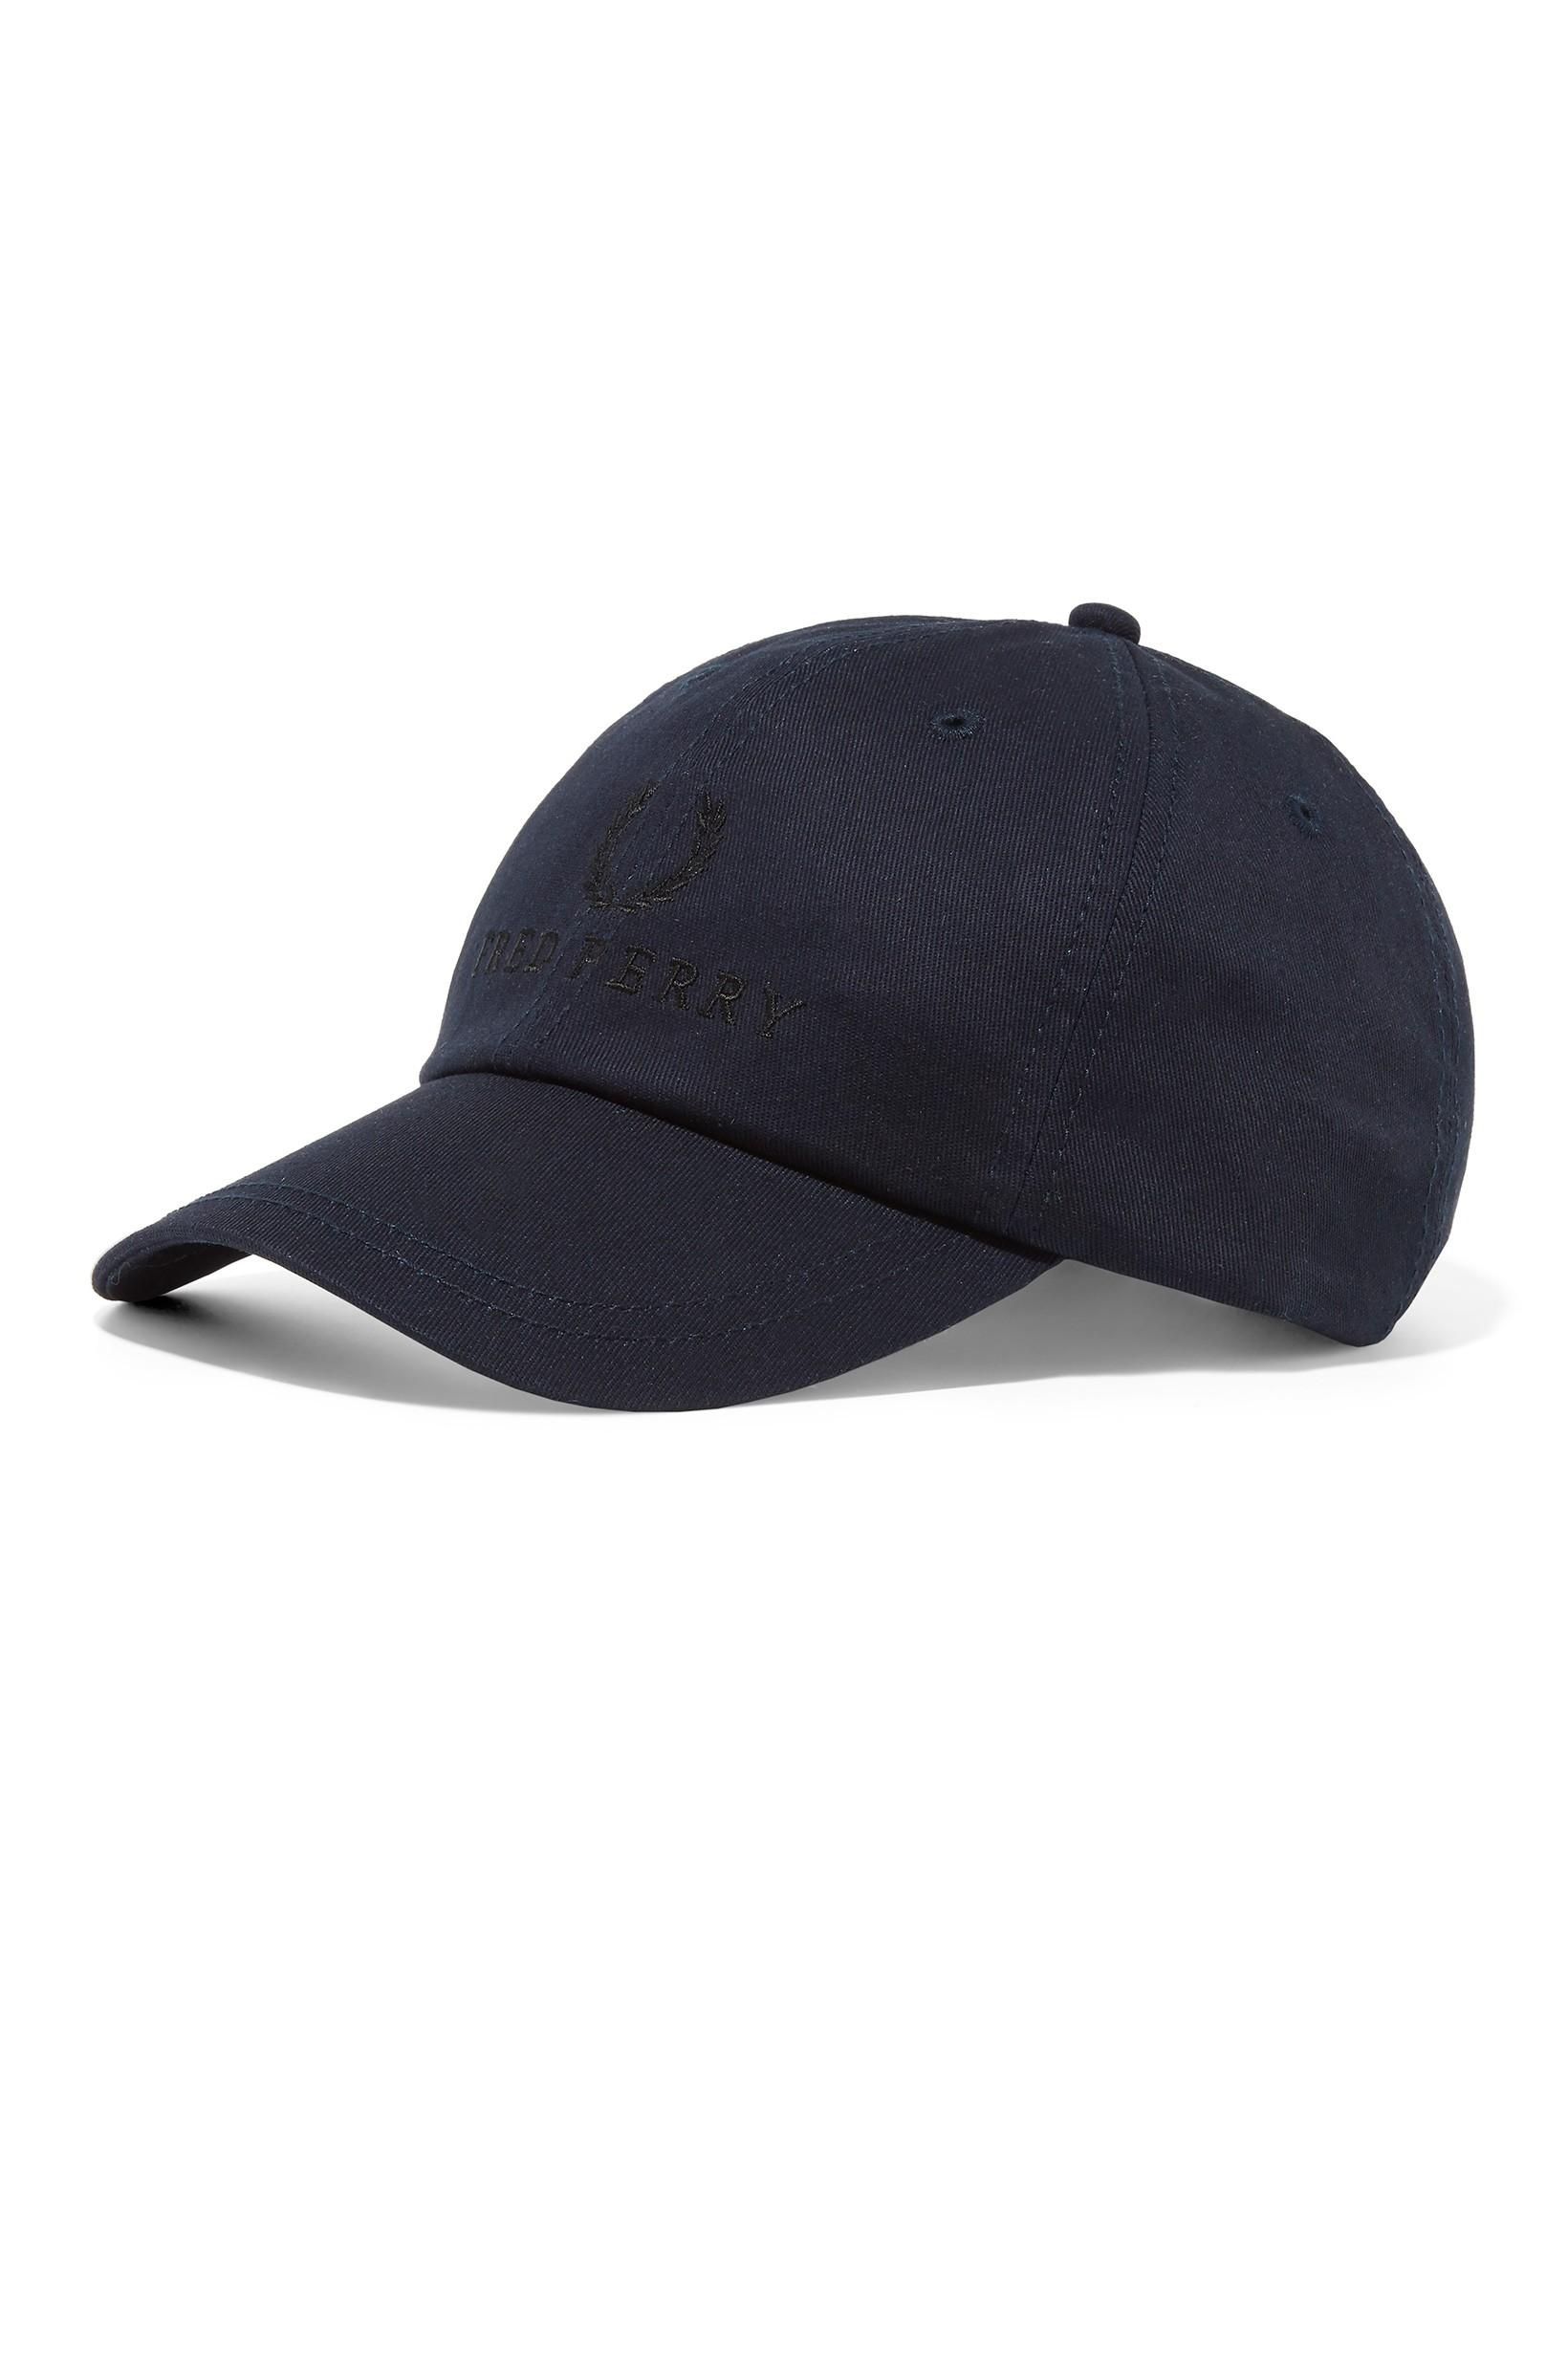 Fred Perry Washed Navy Embroidered Tennis Cap